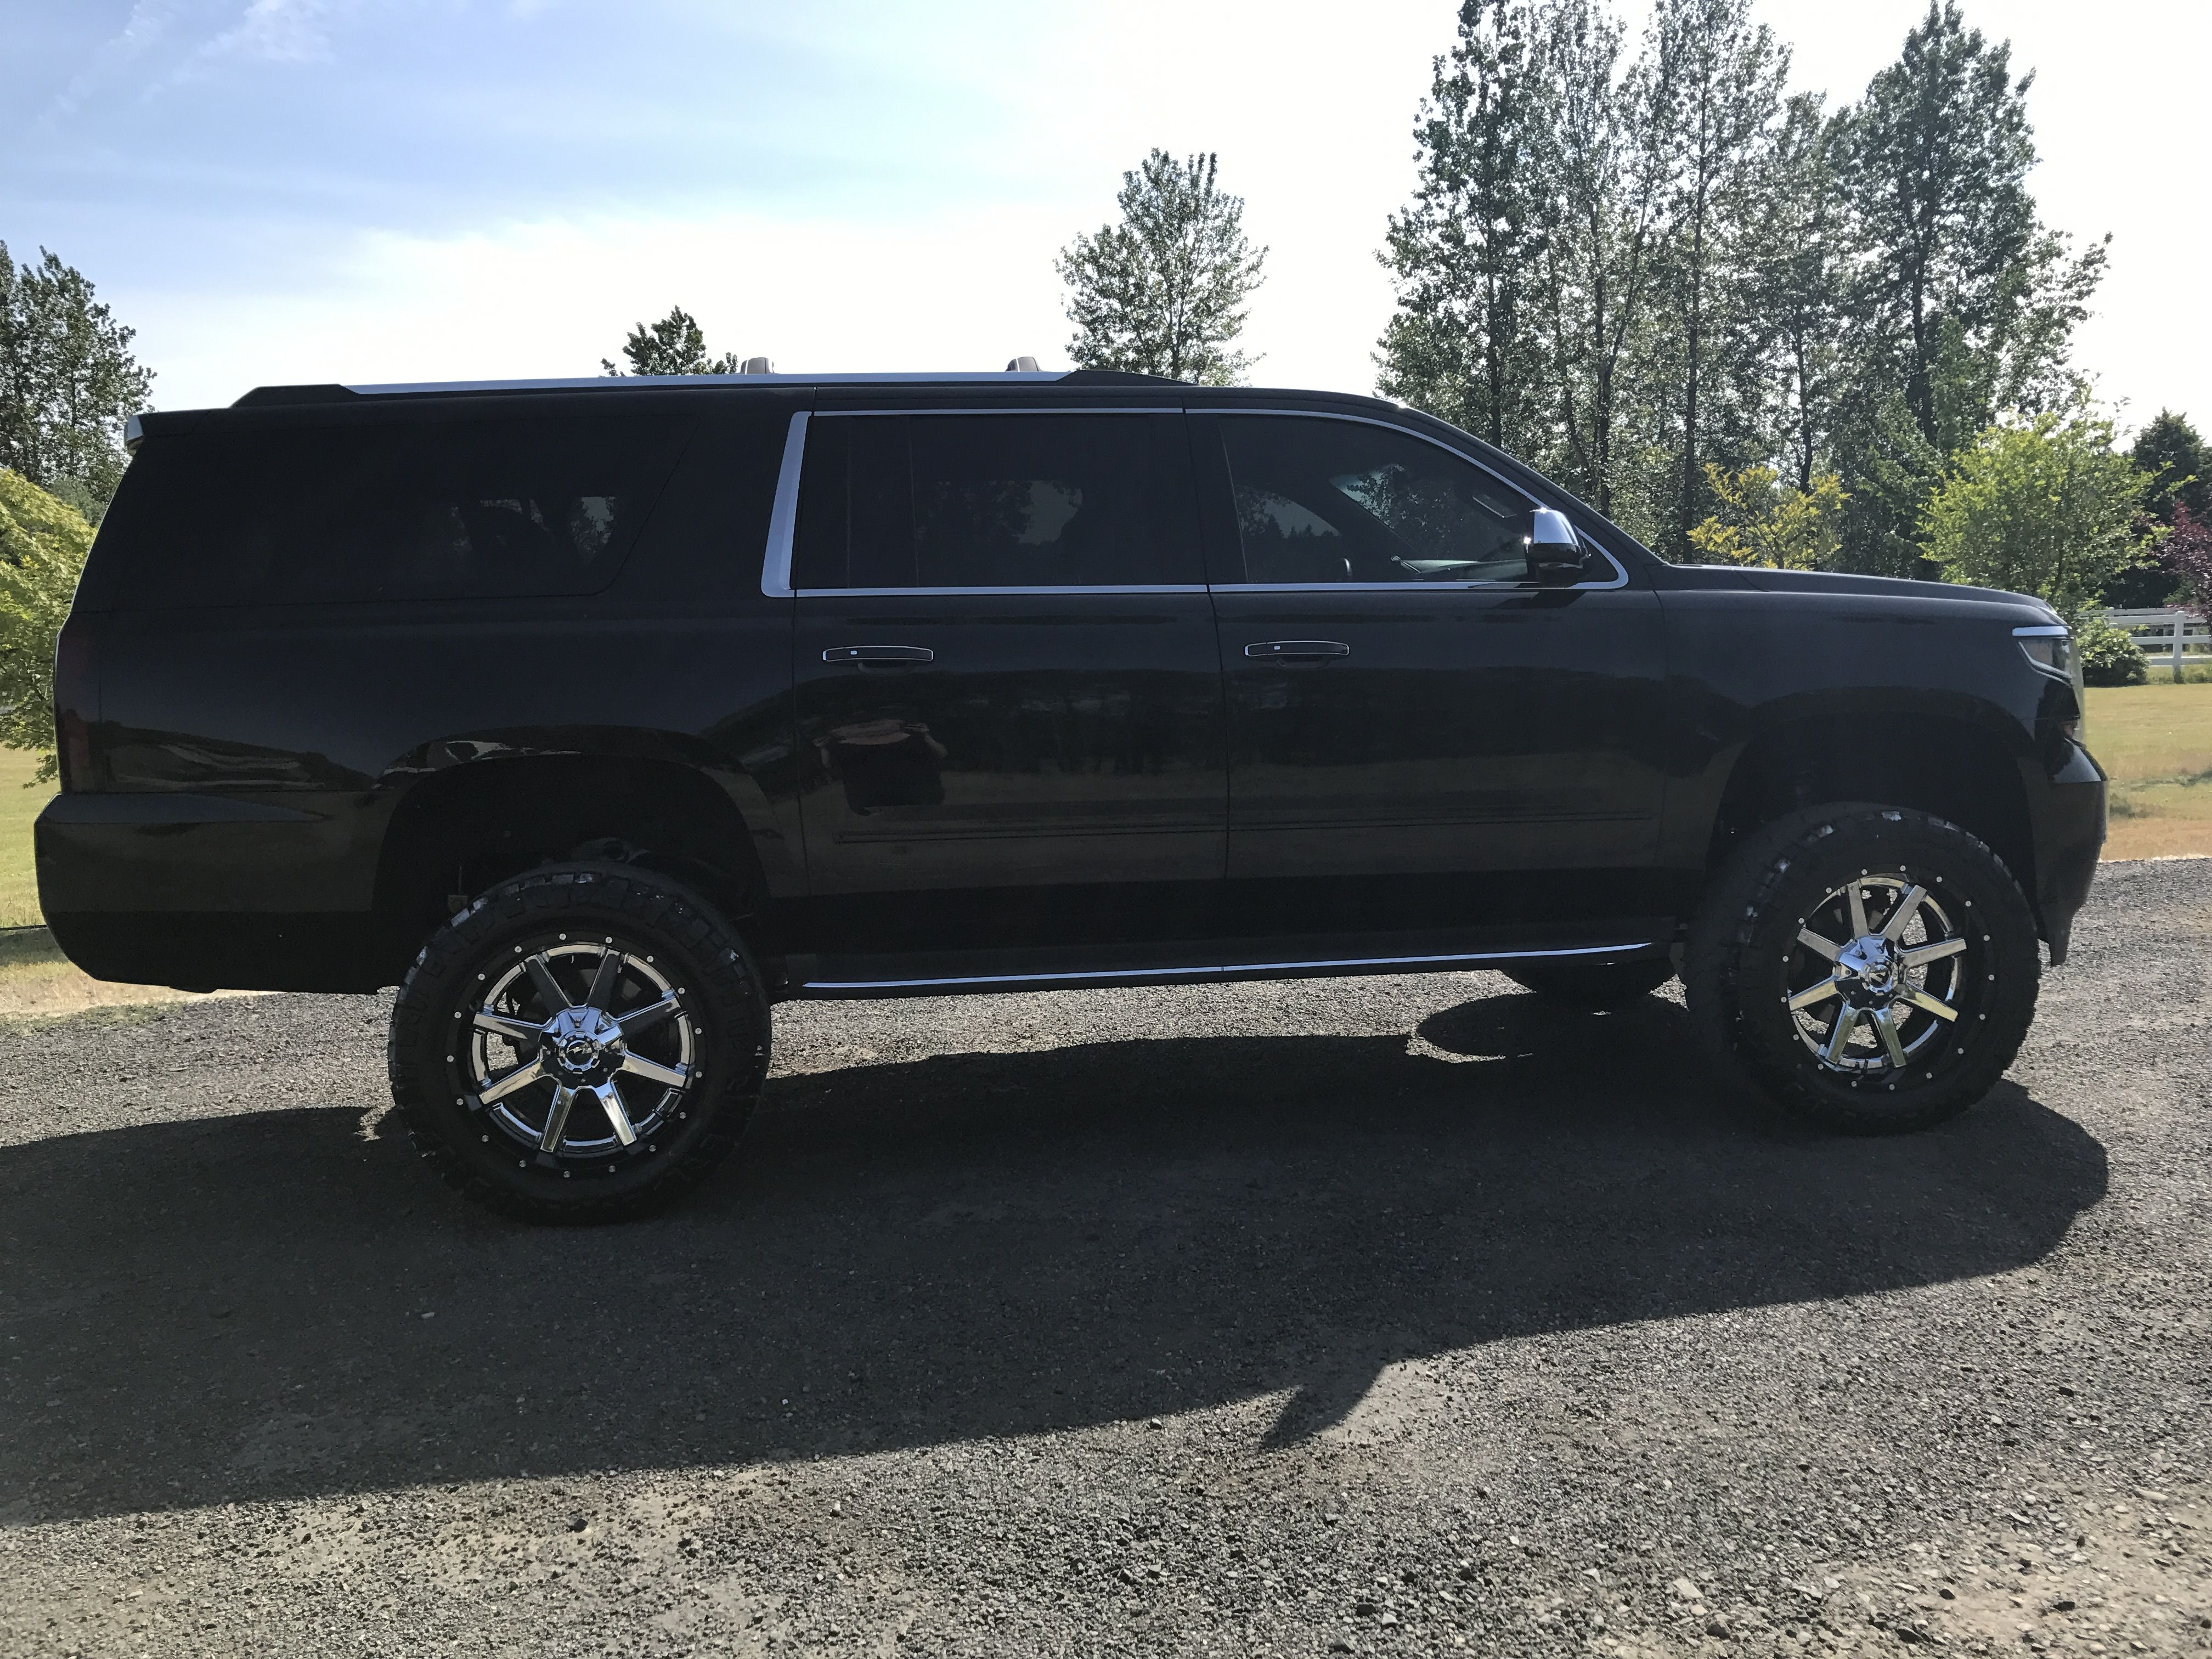 2015 lifted suburban 22 fuel rims on 35 tires 6 fabtech lift [ 4032 x 3024 Pixel ]